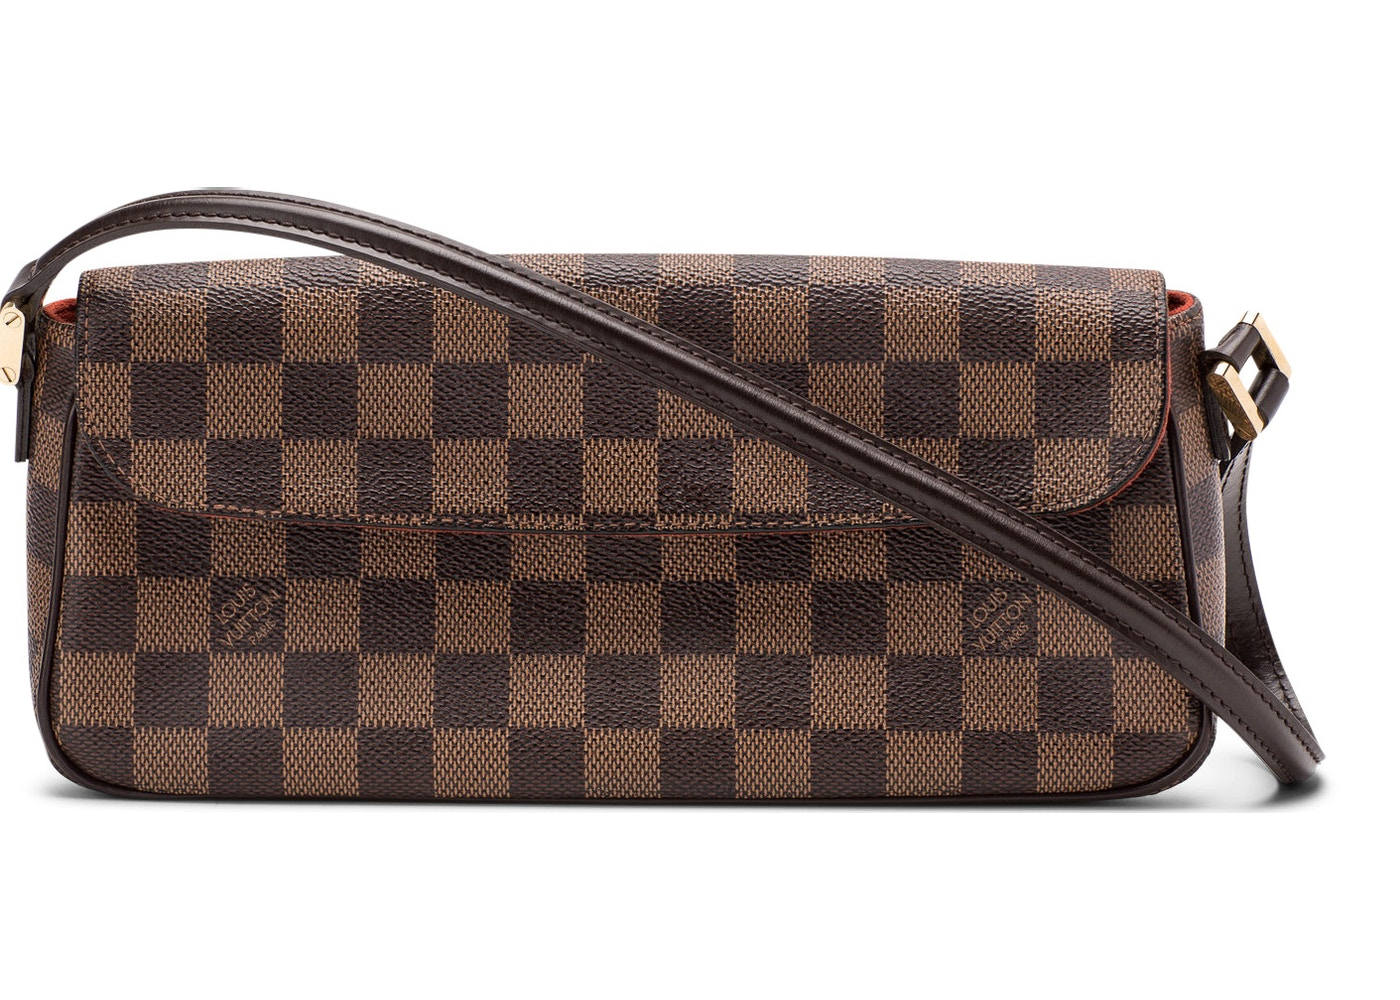 214d47b89f36 Louis Vuitton Recoleta Damier Ebene Brown. Damier Ebene Brown